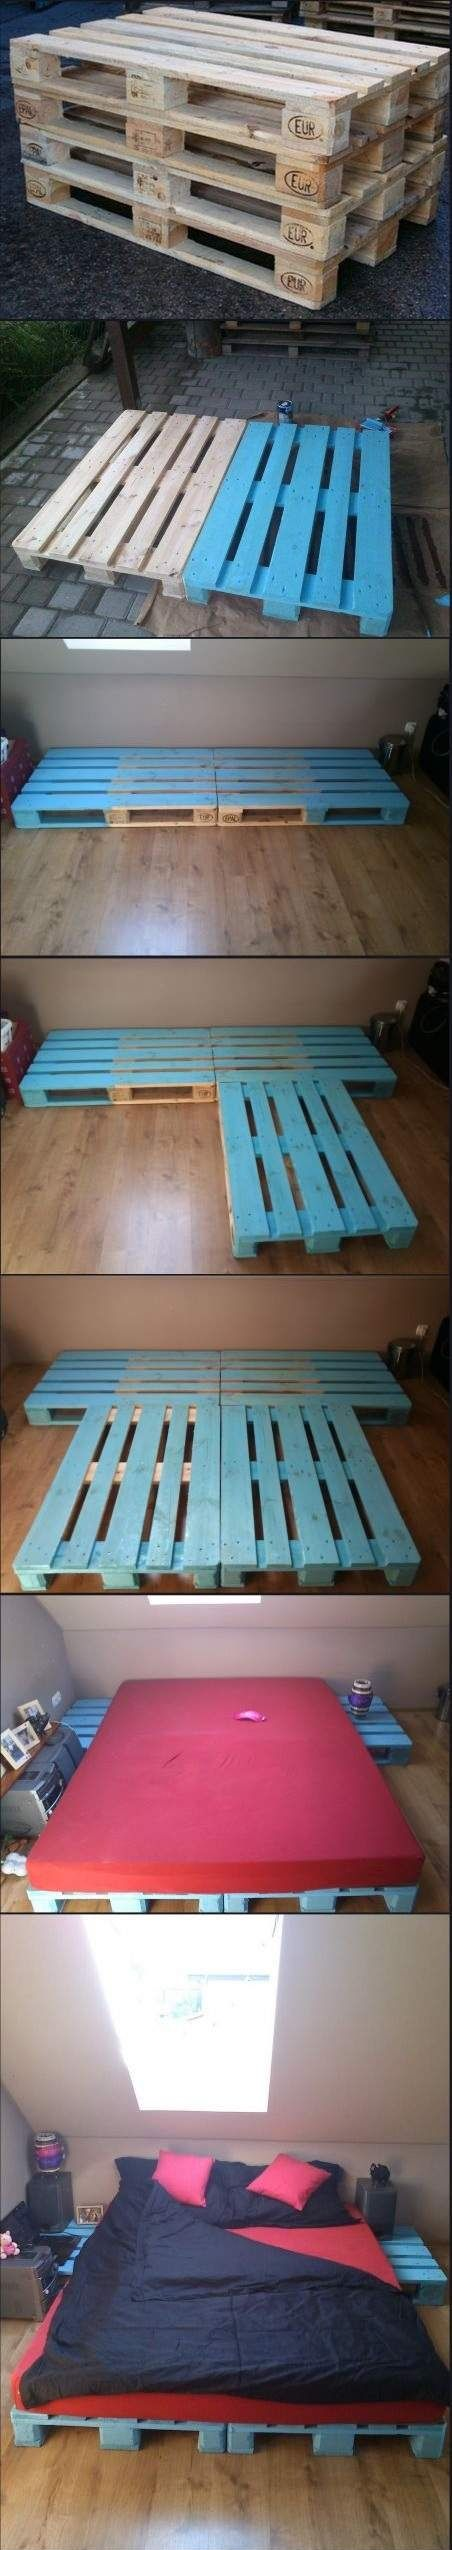 5. Pallet Bed - TOP 10 Creative Ways To Recycle Wooden Pallets